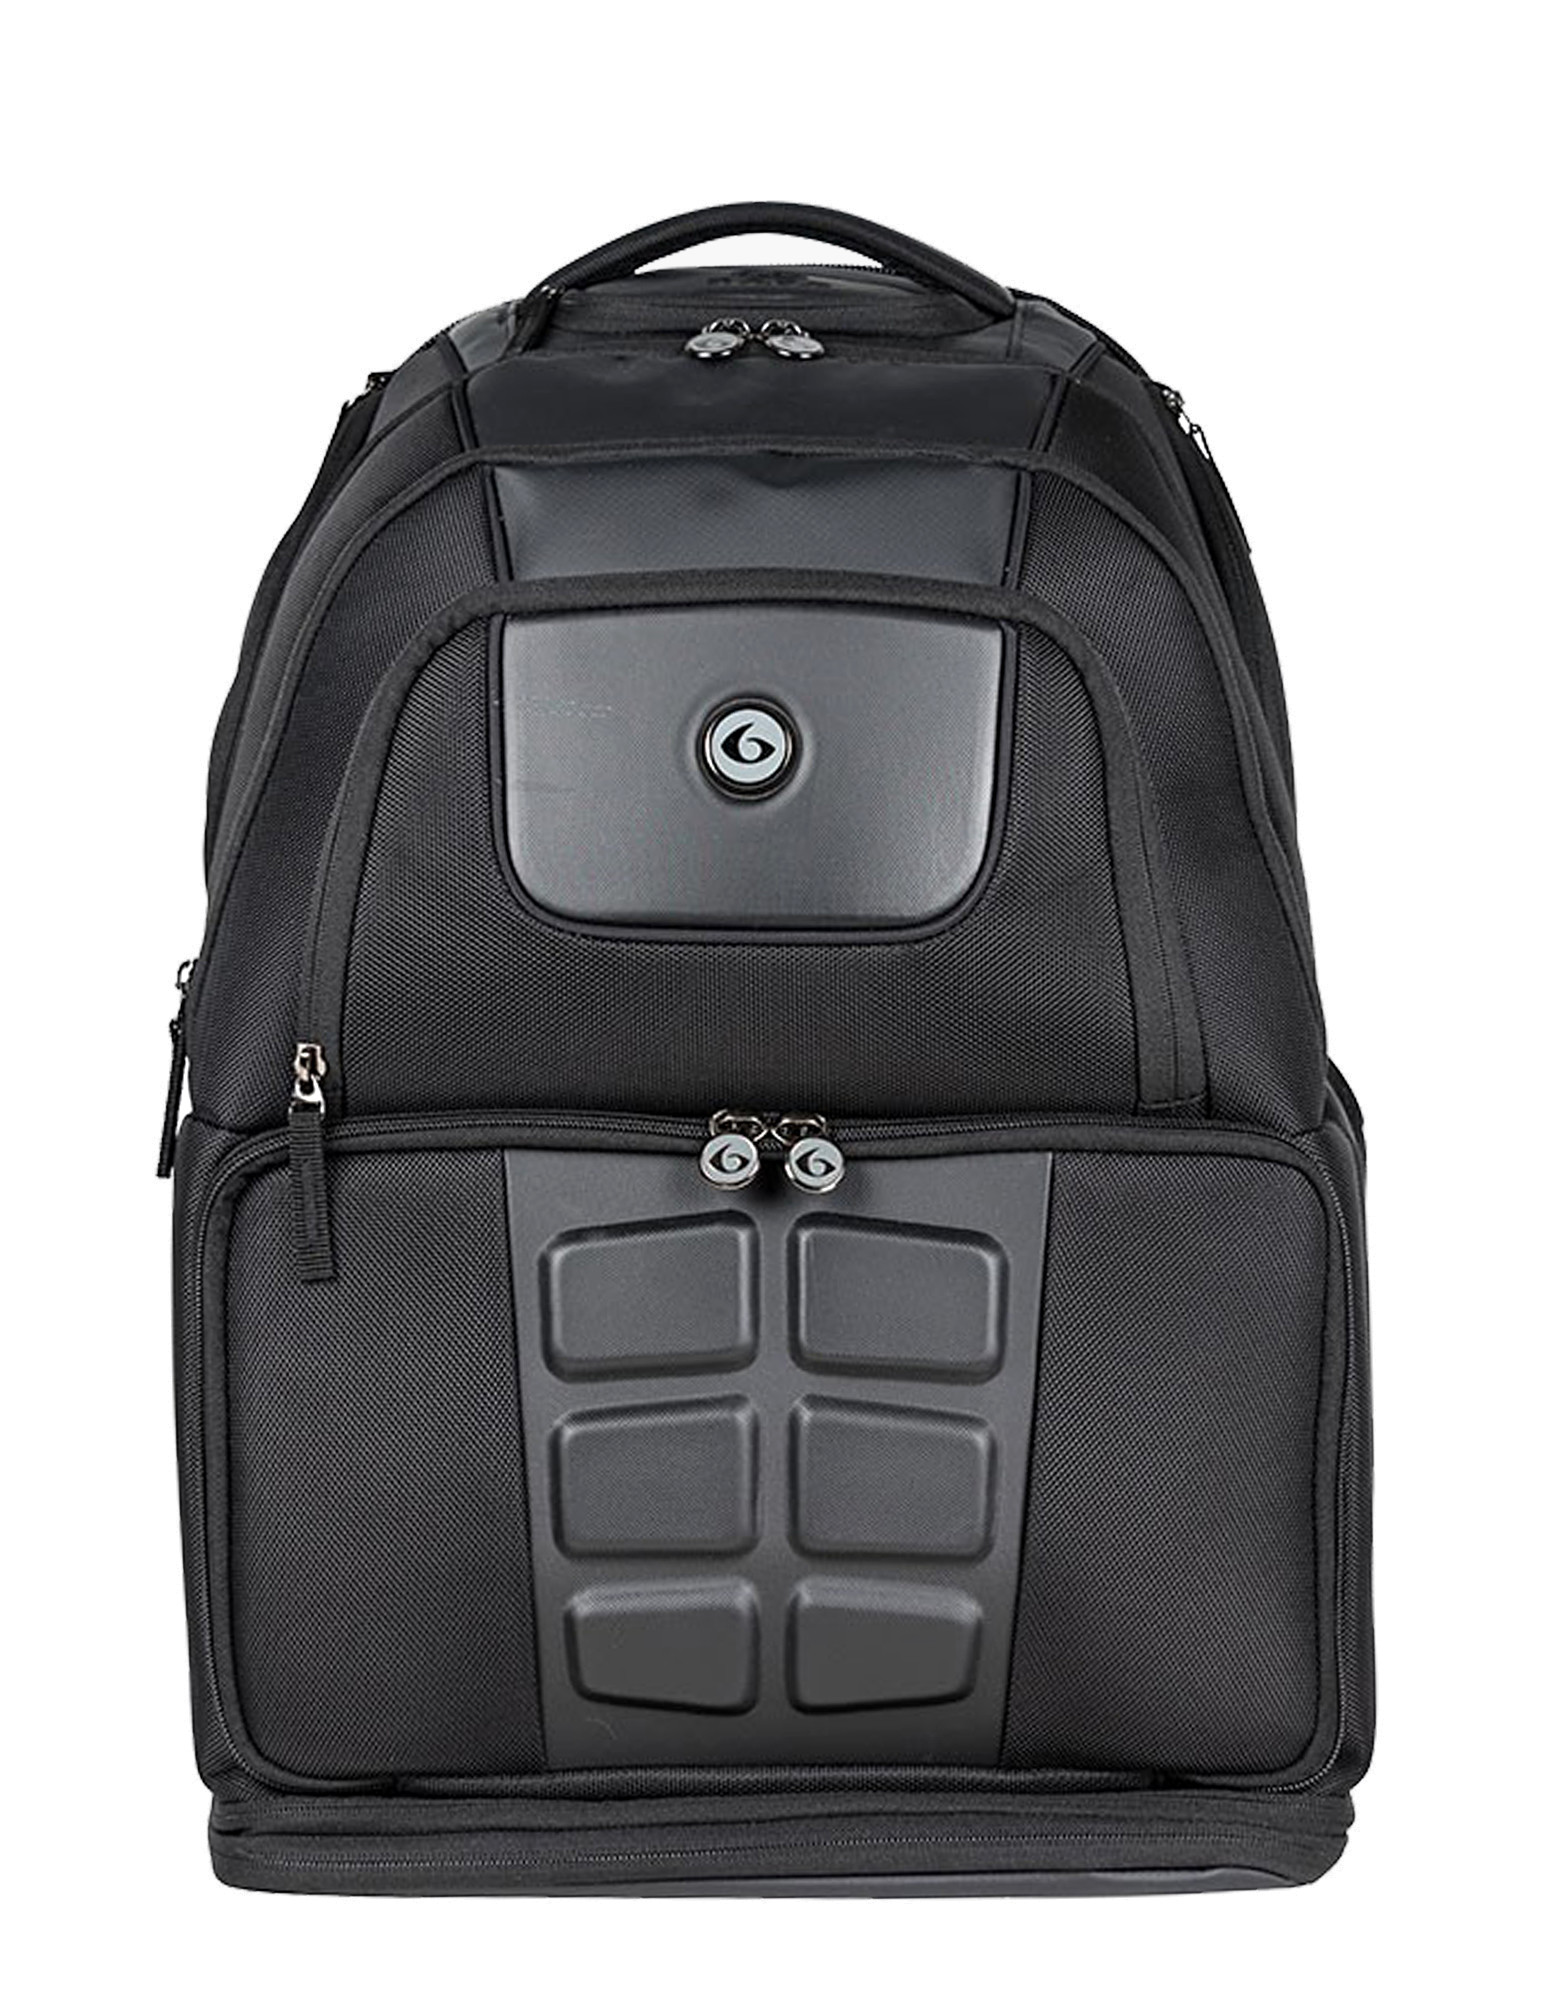 efb39c1ddea2 Voyager Backpack 500 by 6 PACK FITNESS (colour  black)